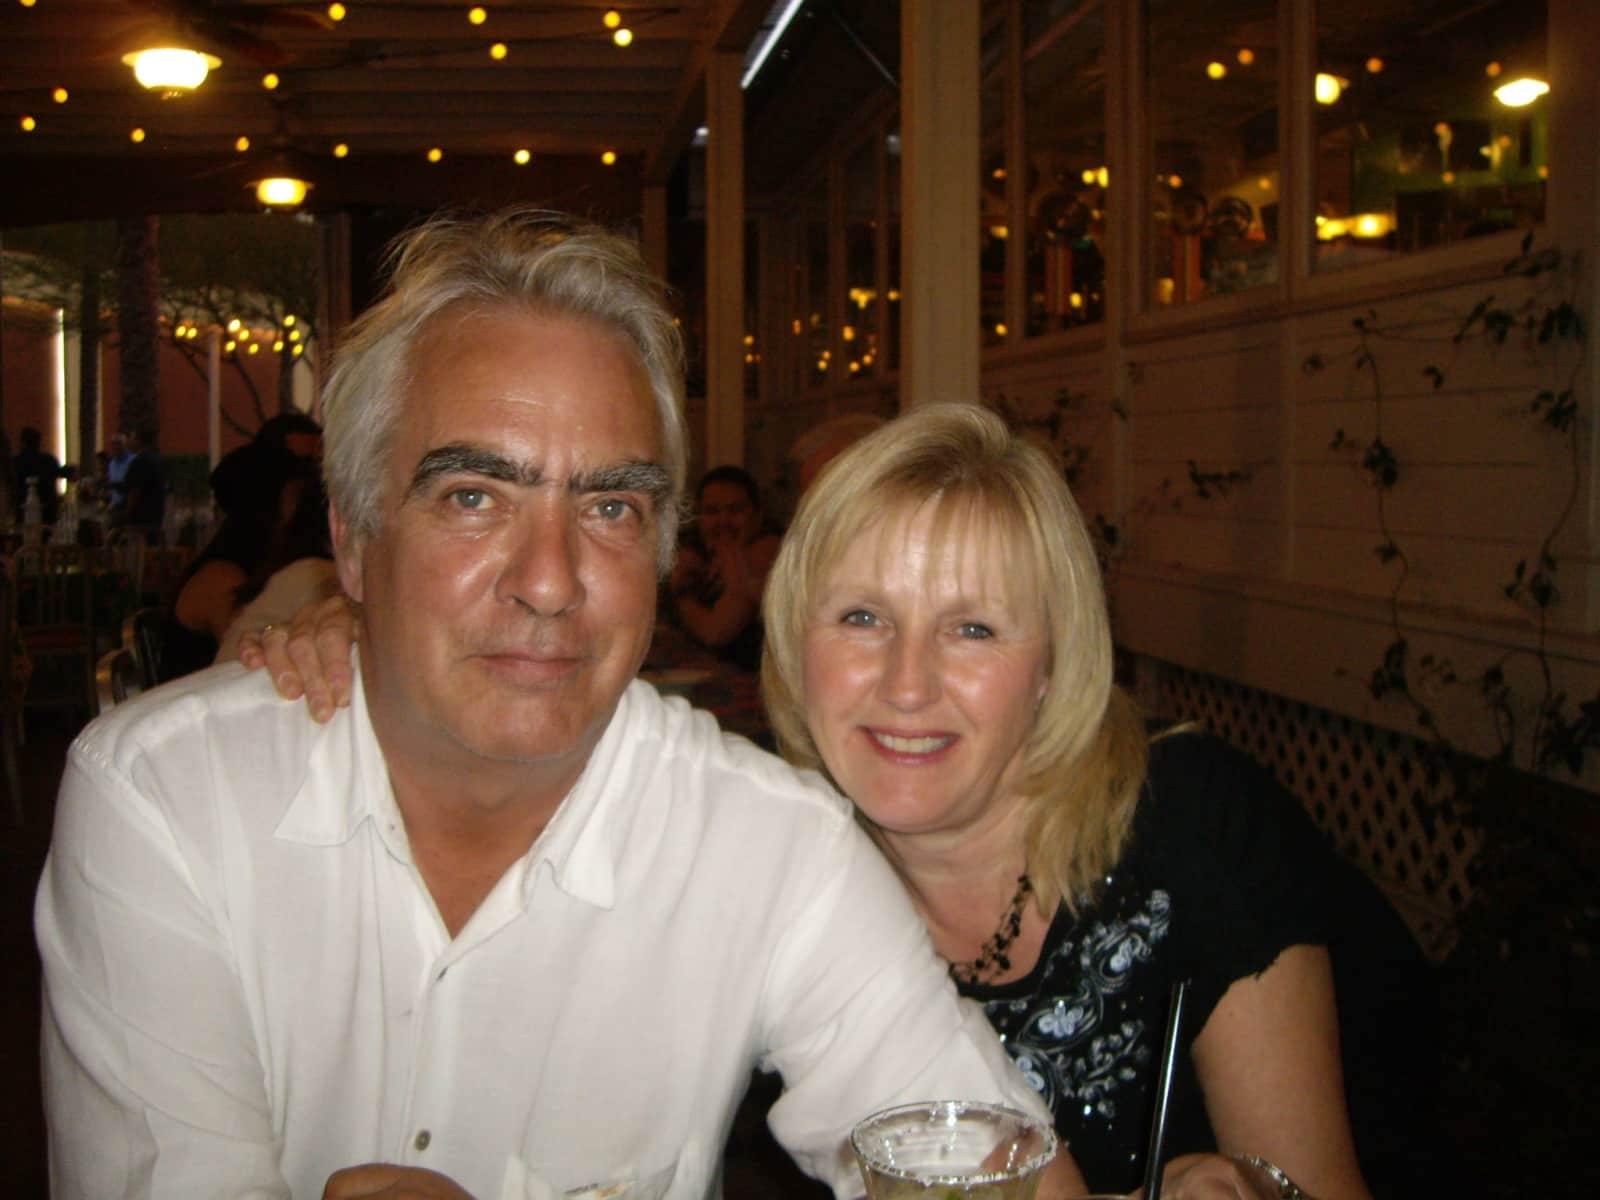 Scott & Vickie from Maple Creek, Saskatchewan, Canada